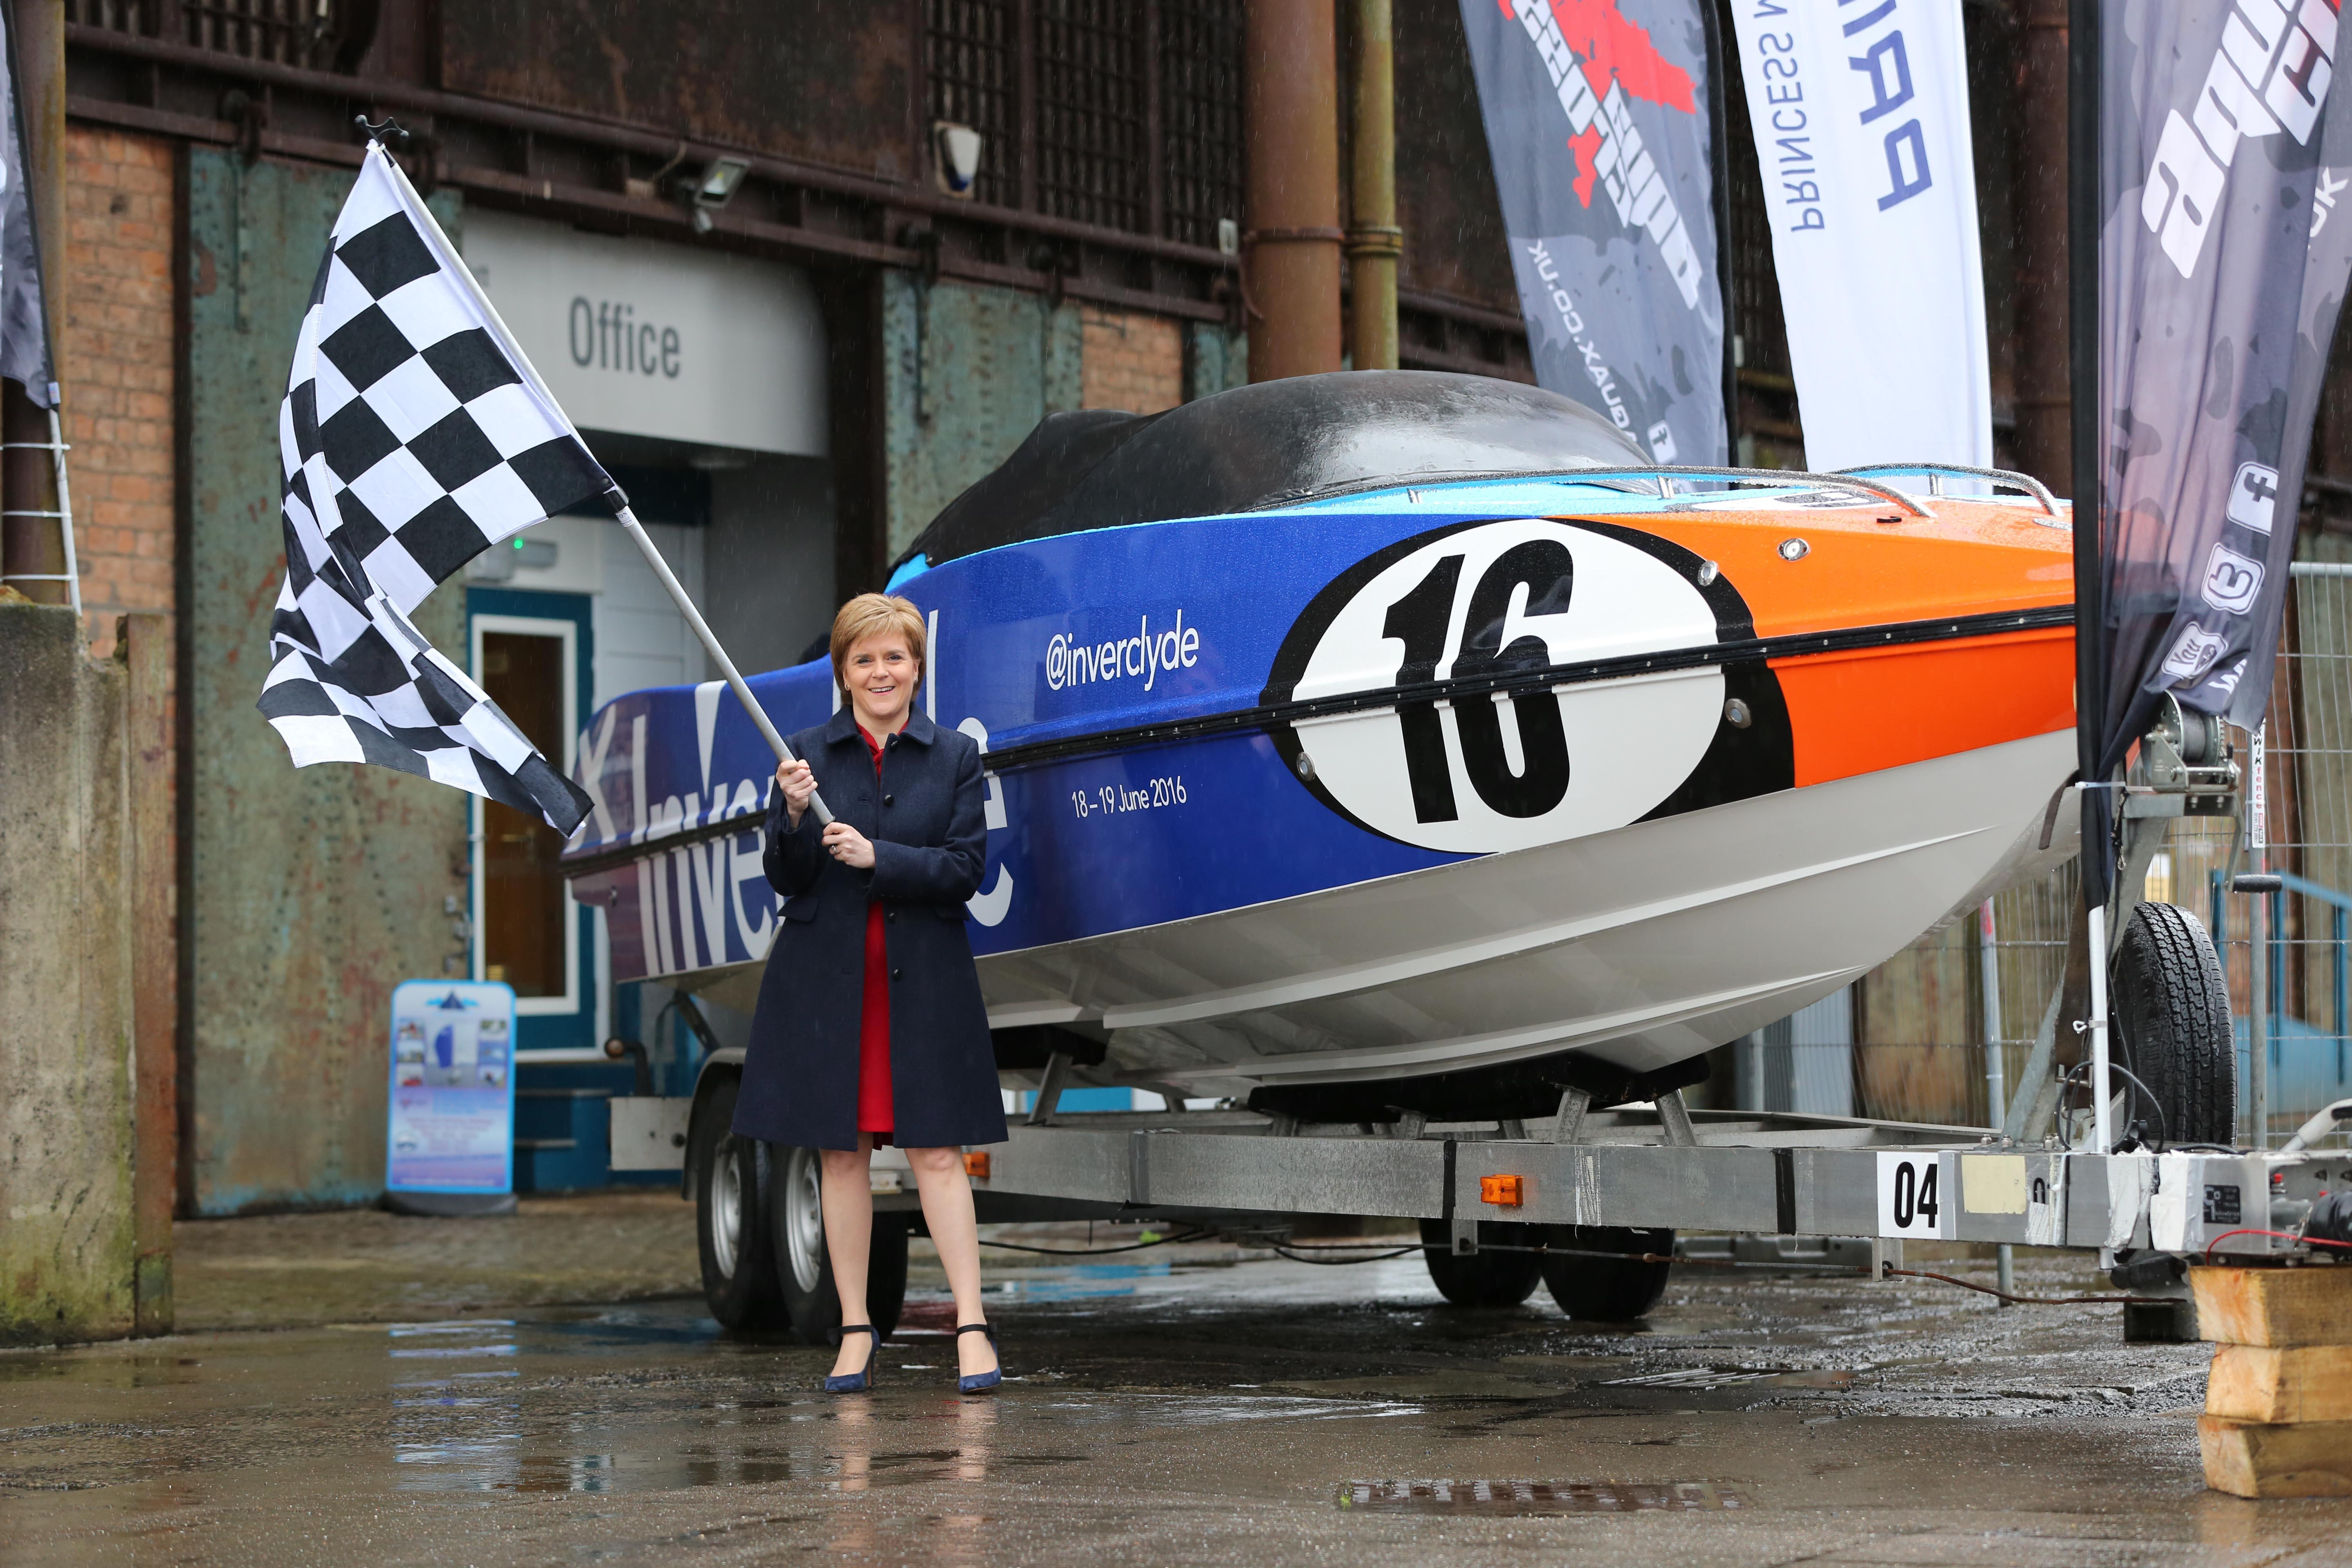 Inverclyde's P1 boat and first minister